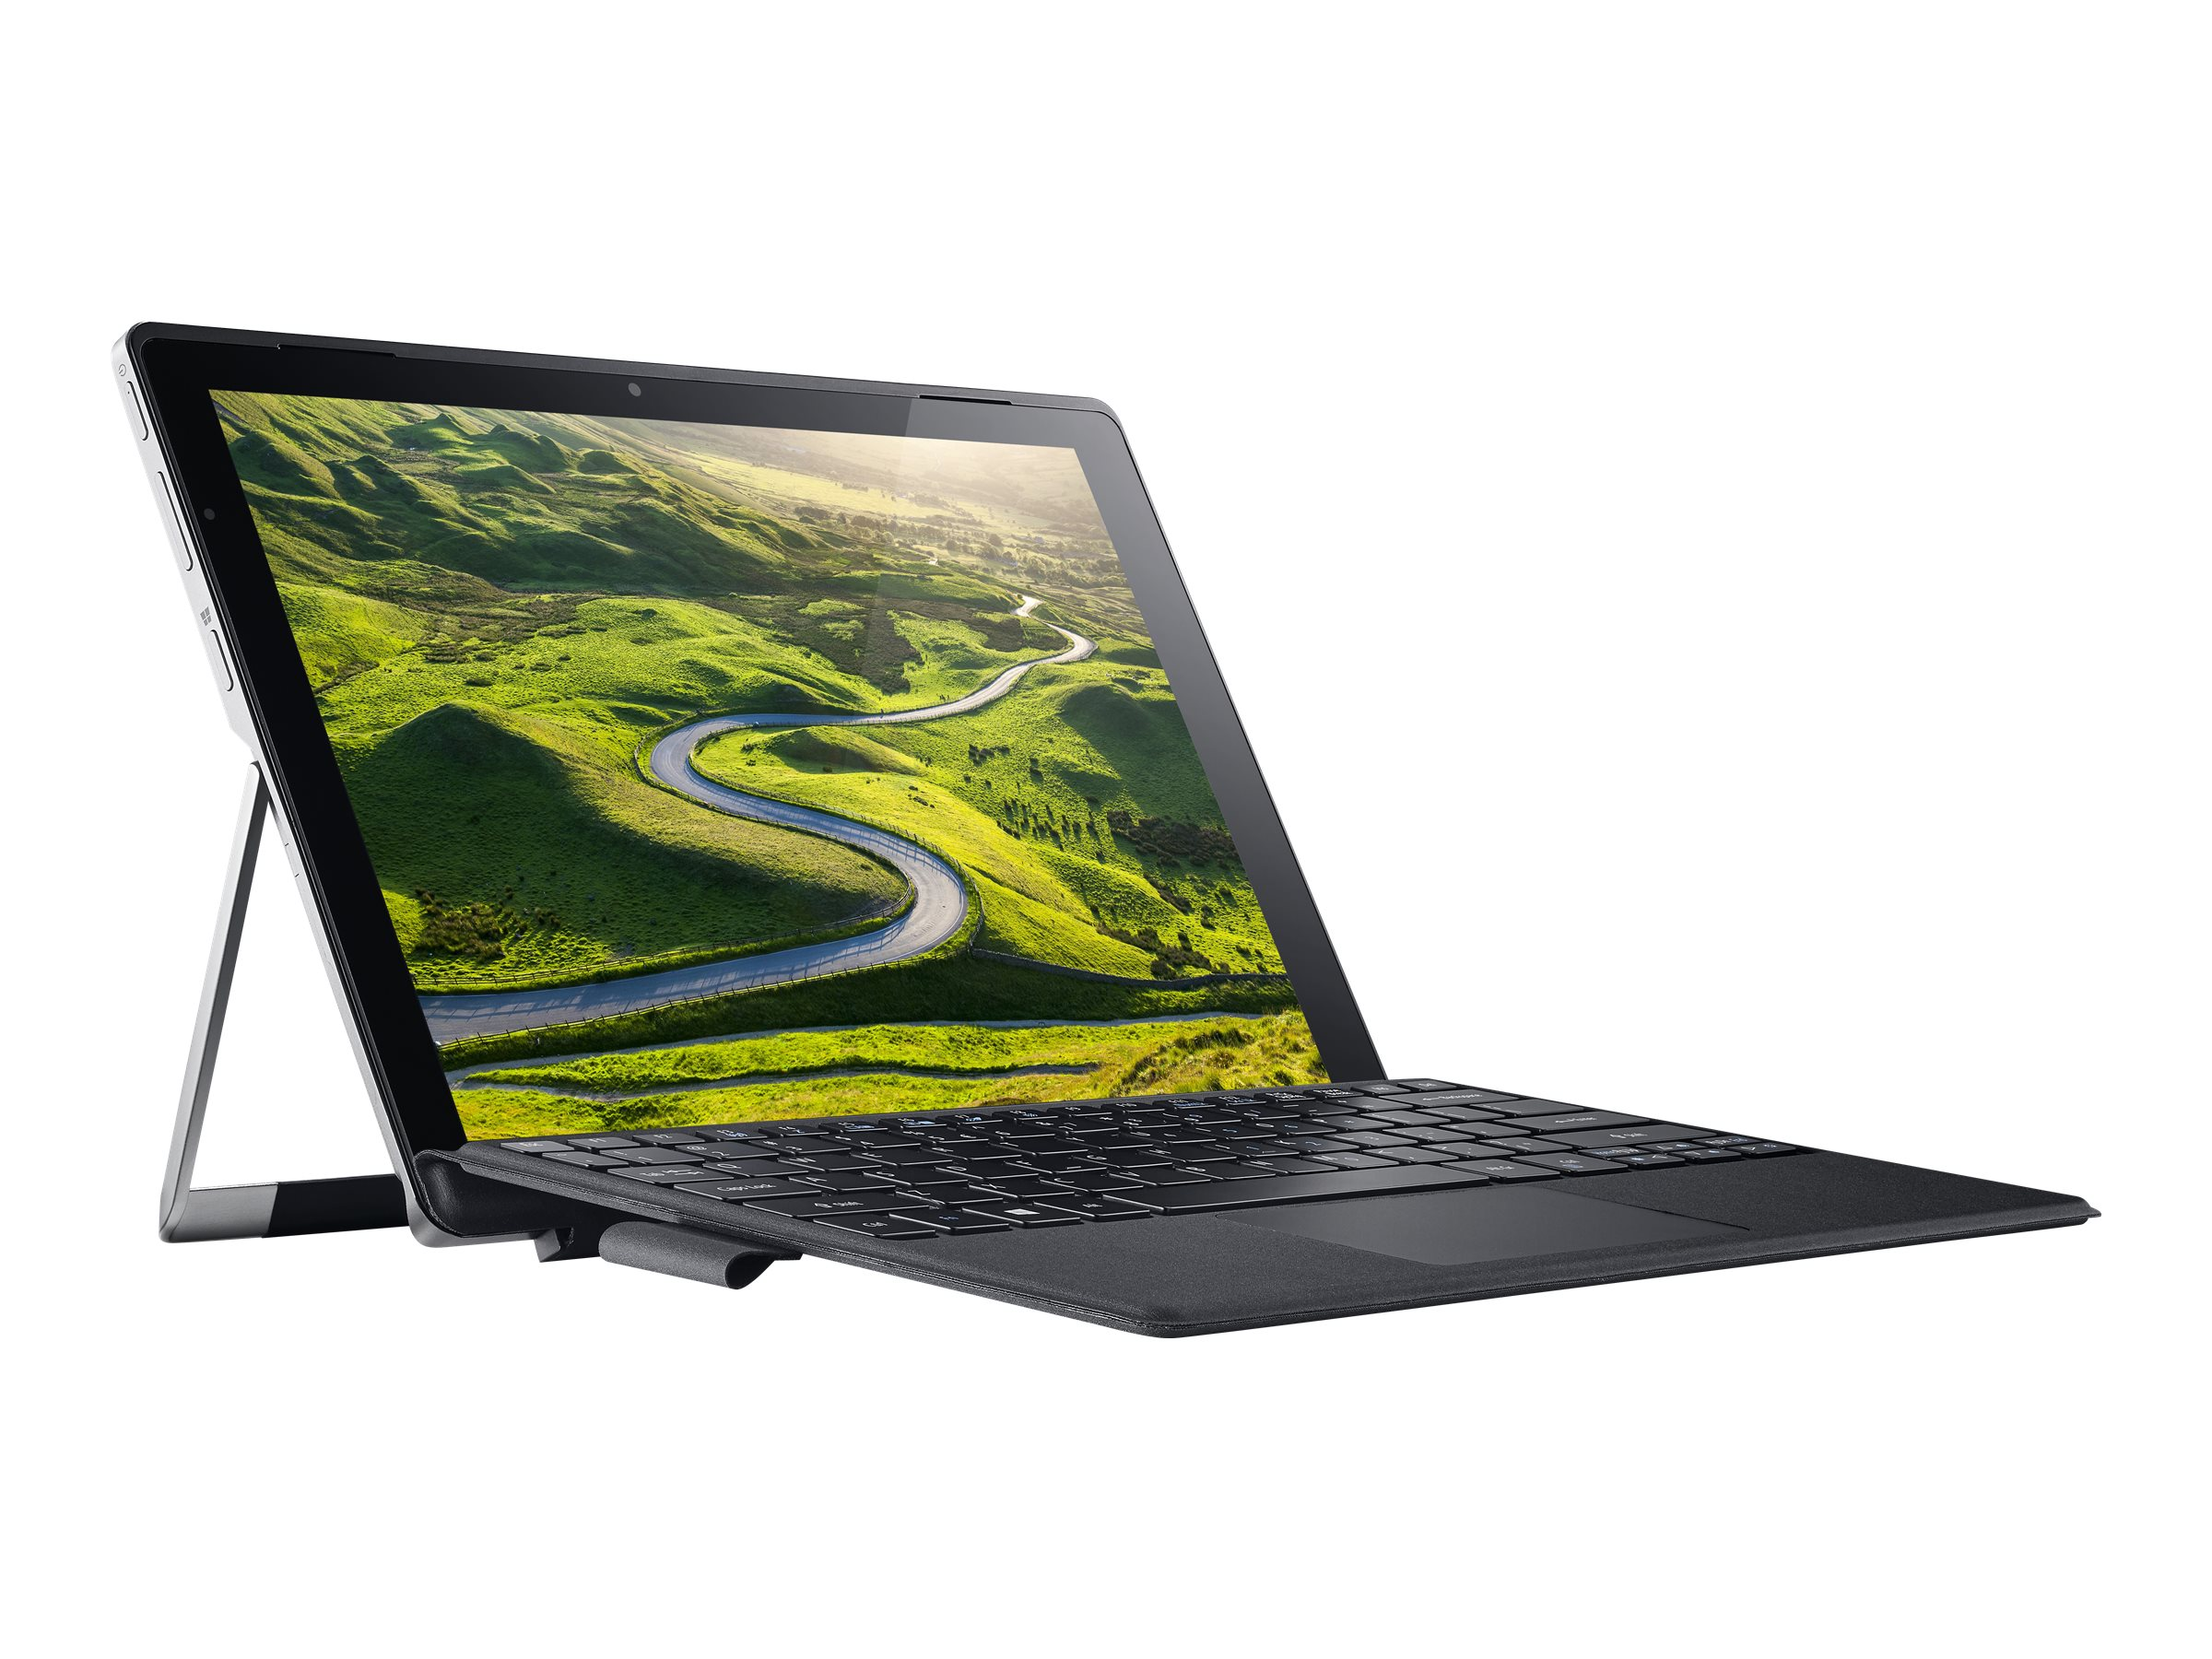 Acer Aspire Switch Alpha 12 SA5-271P-74E1 2.5GHz processor Windows 10 Pro 64-bit Edition, NT.LCEAA.005